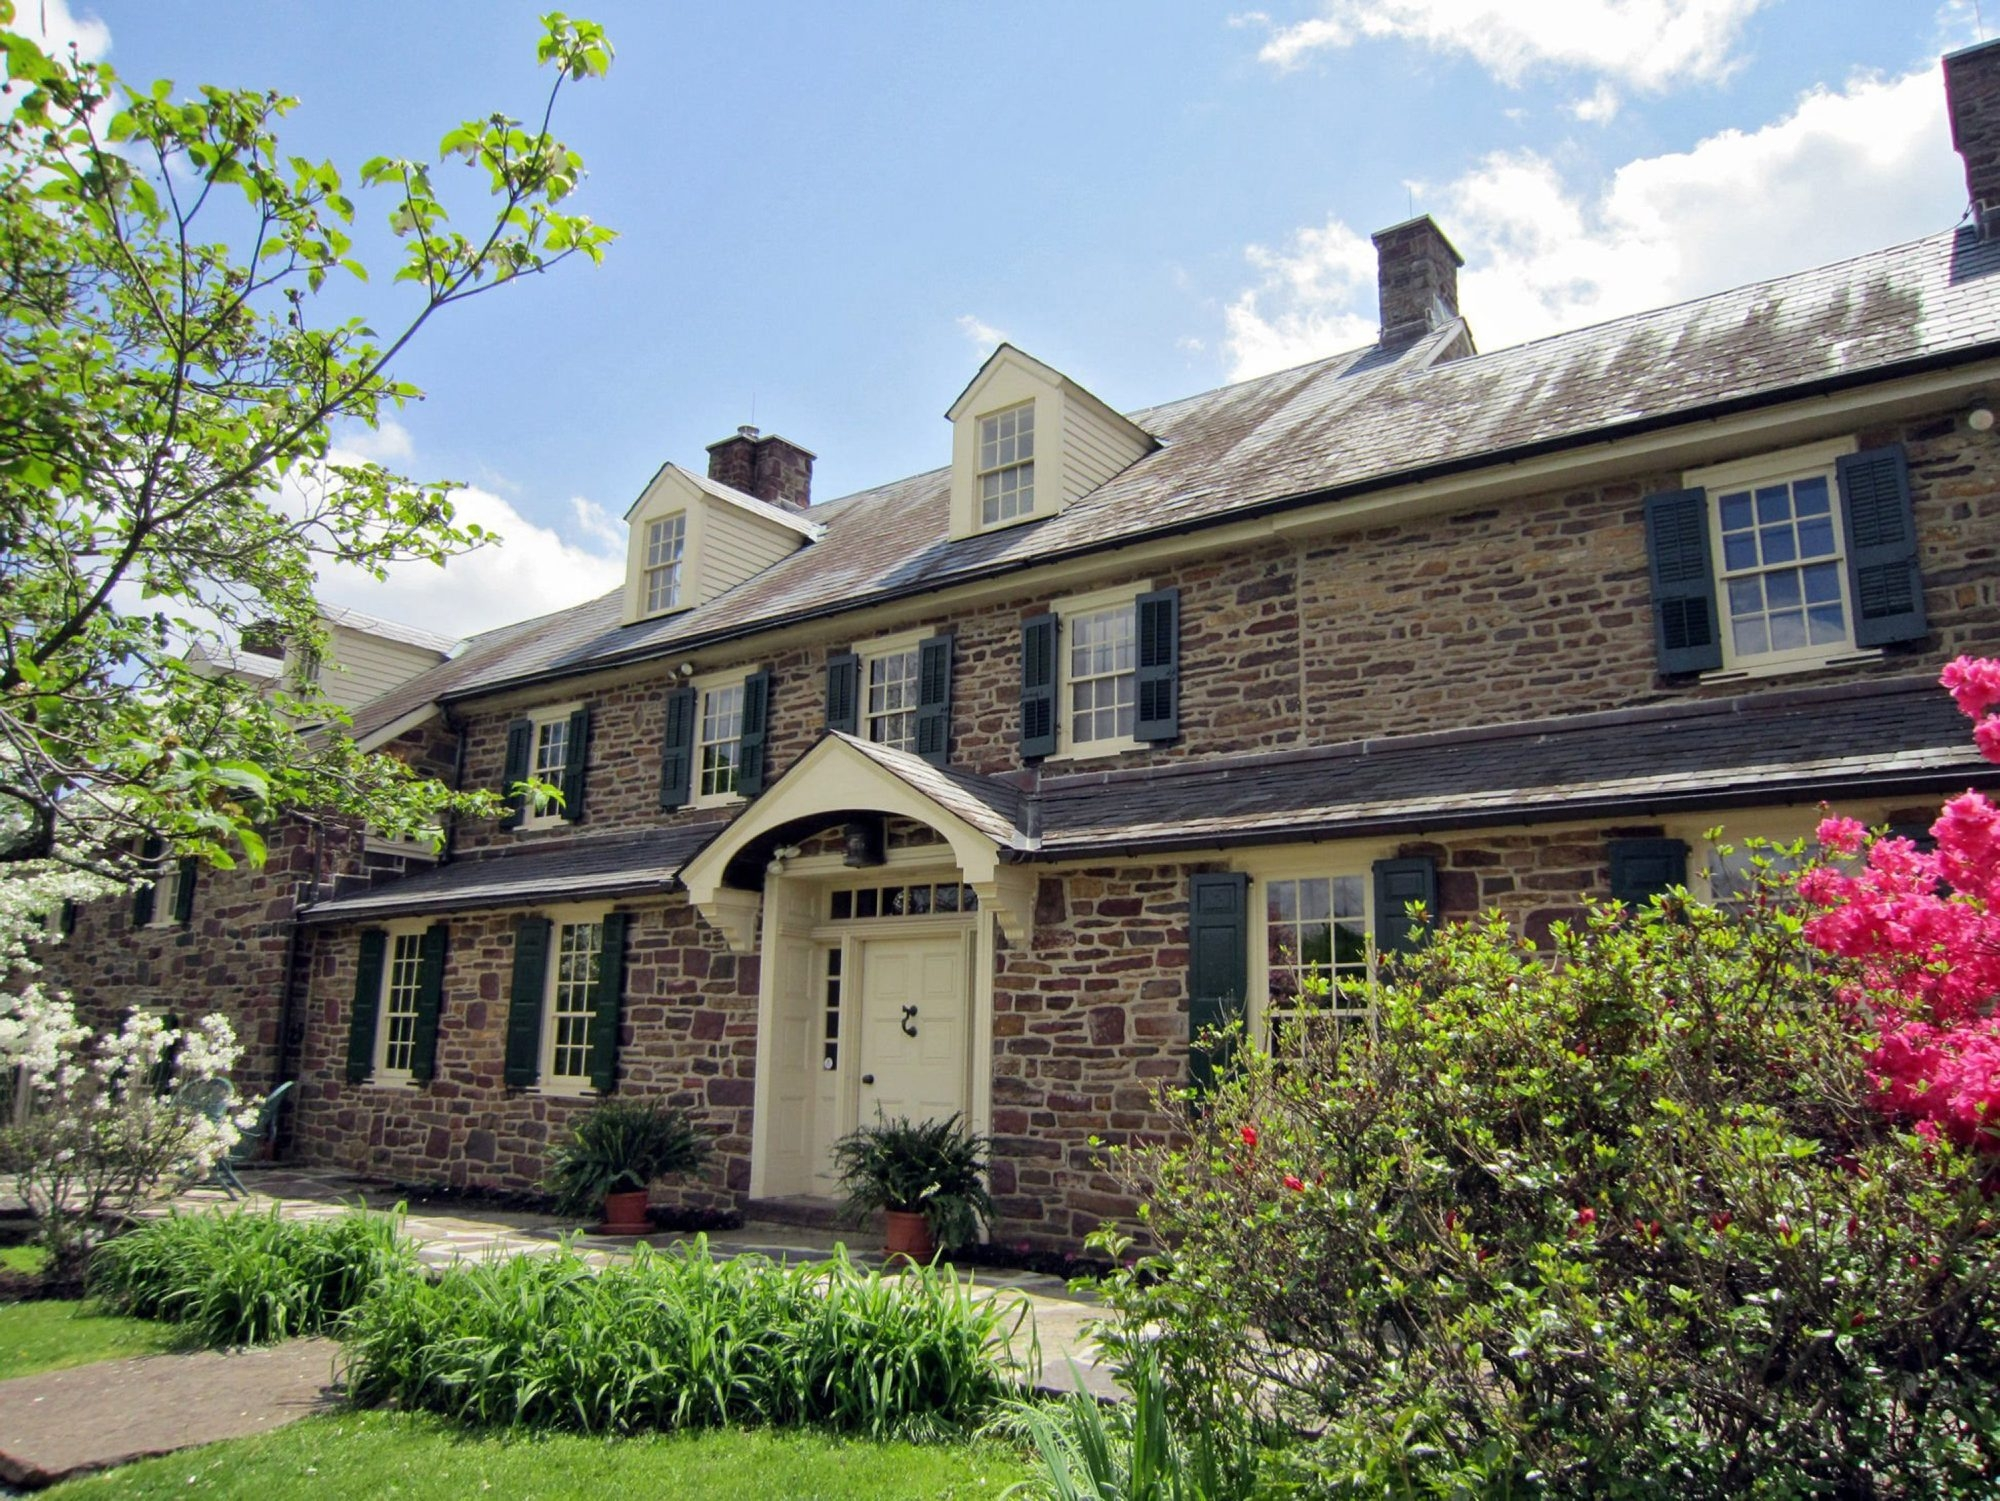 The home of author Pearl Buck in Perkasie, Penn., remains largely the same as when she lived there. (Diane Stoneback/Allentown Morning Call/MCT)